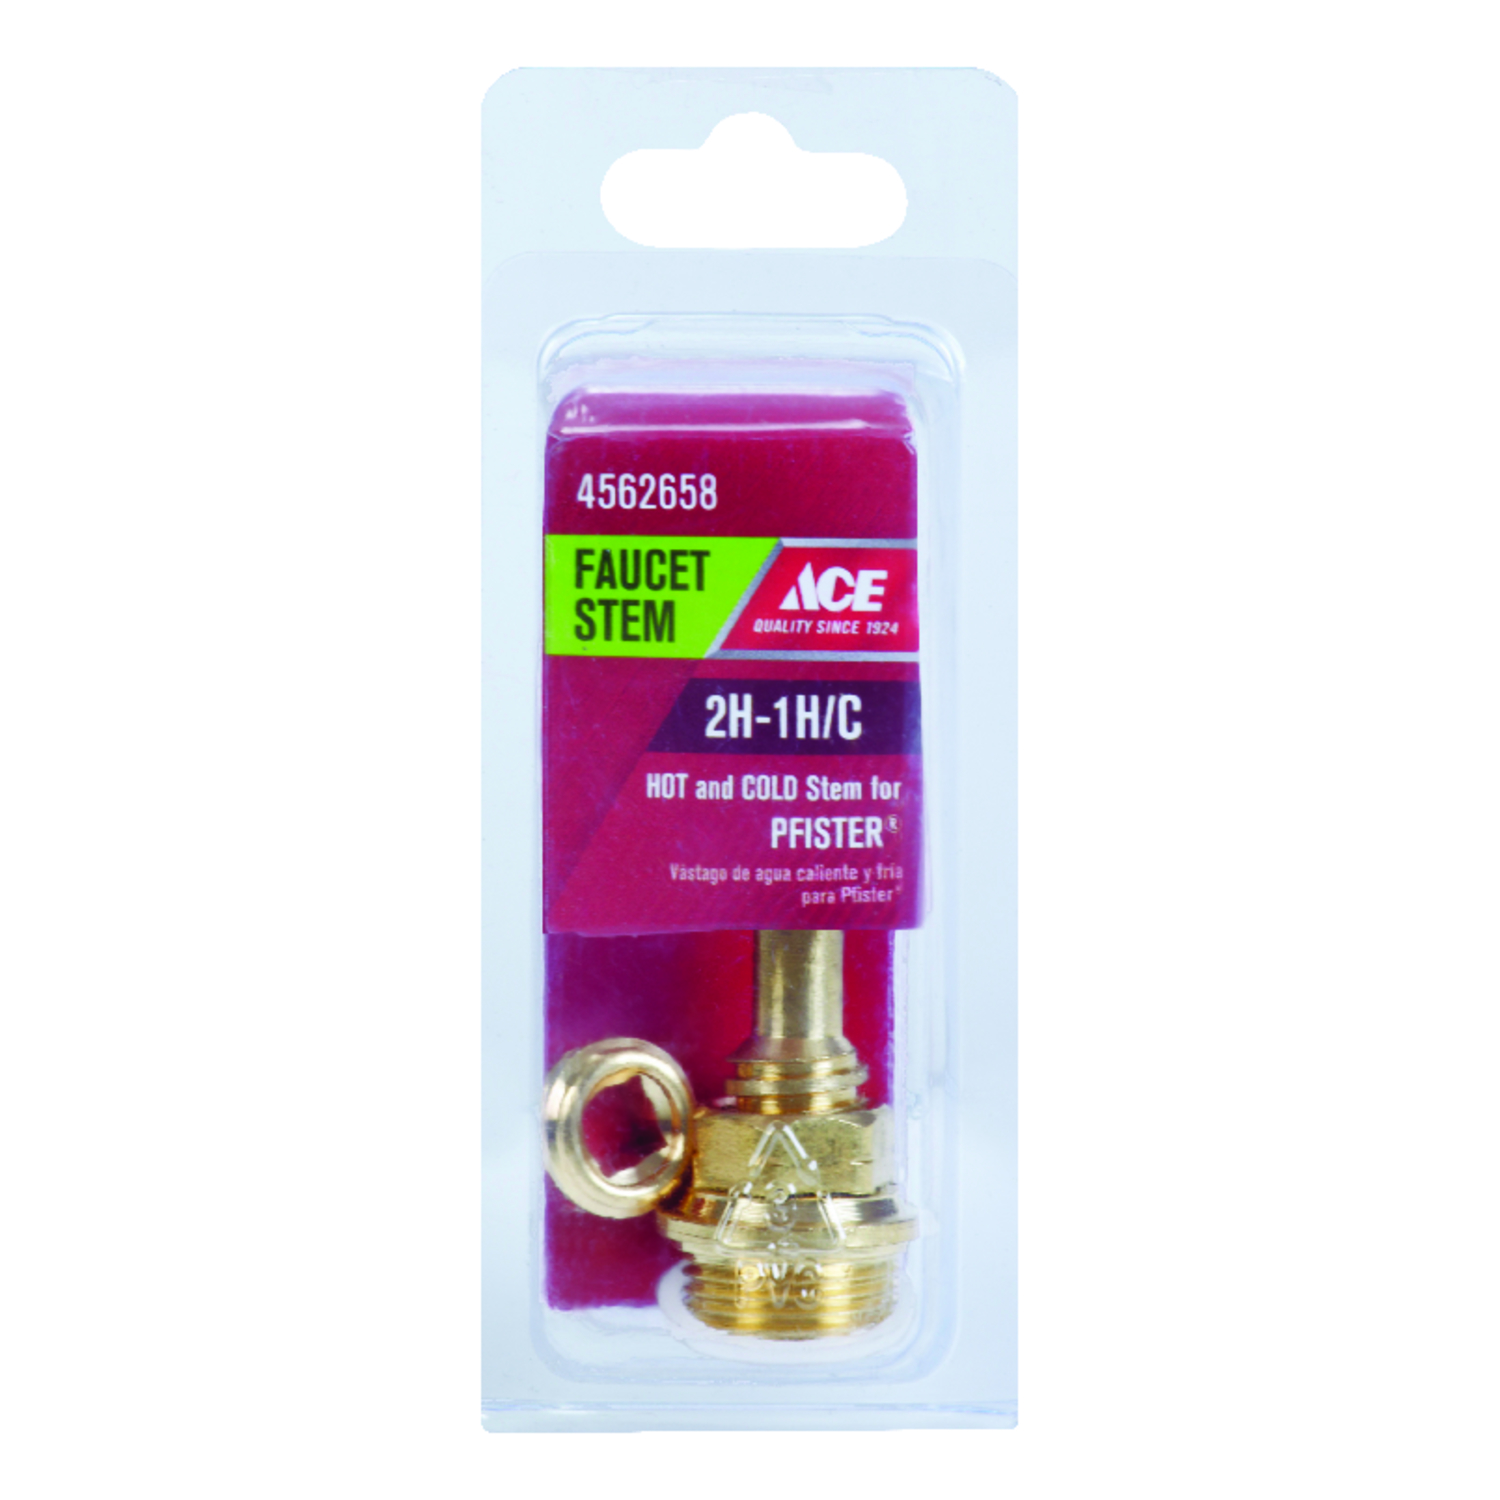 Ace  Low Lead  Hot and Cold  2H-1H/C  Faucet Stem  For Price Pfister